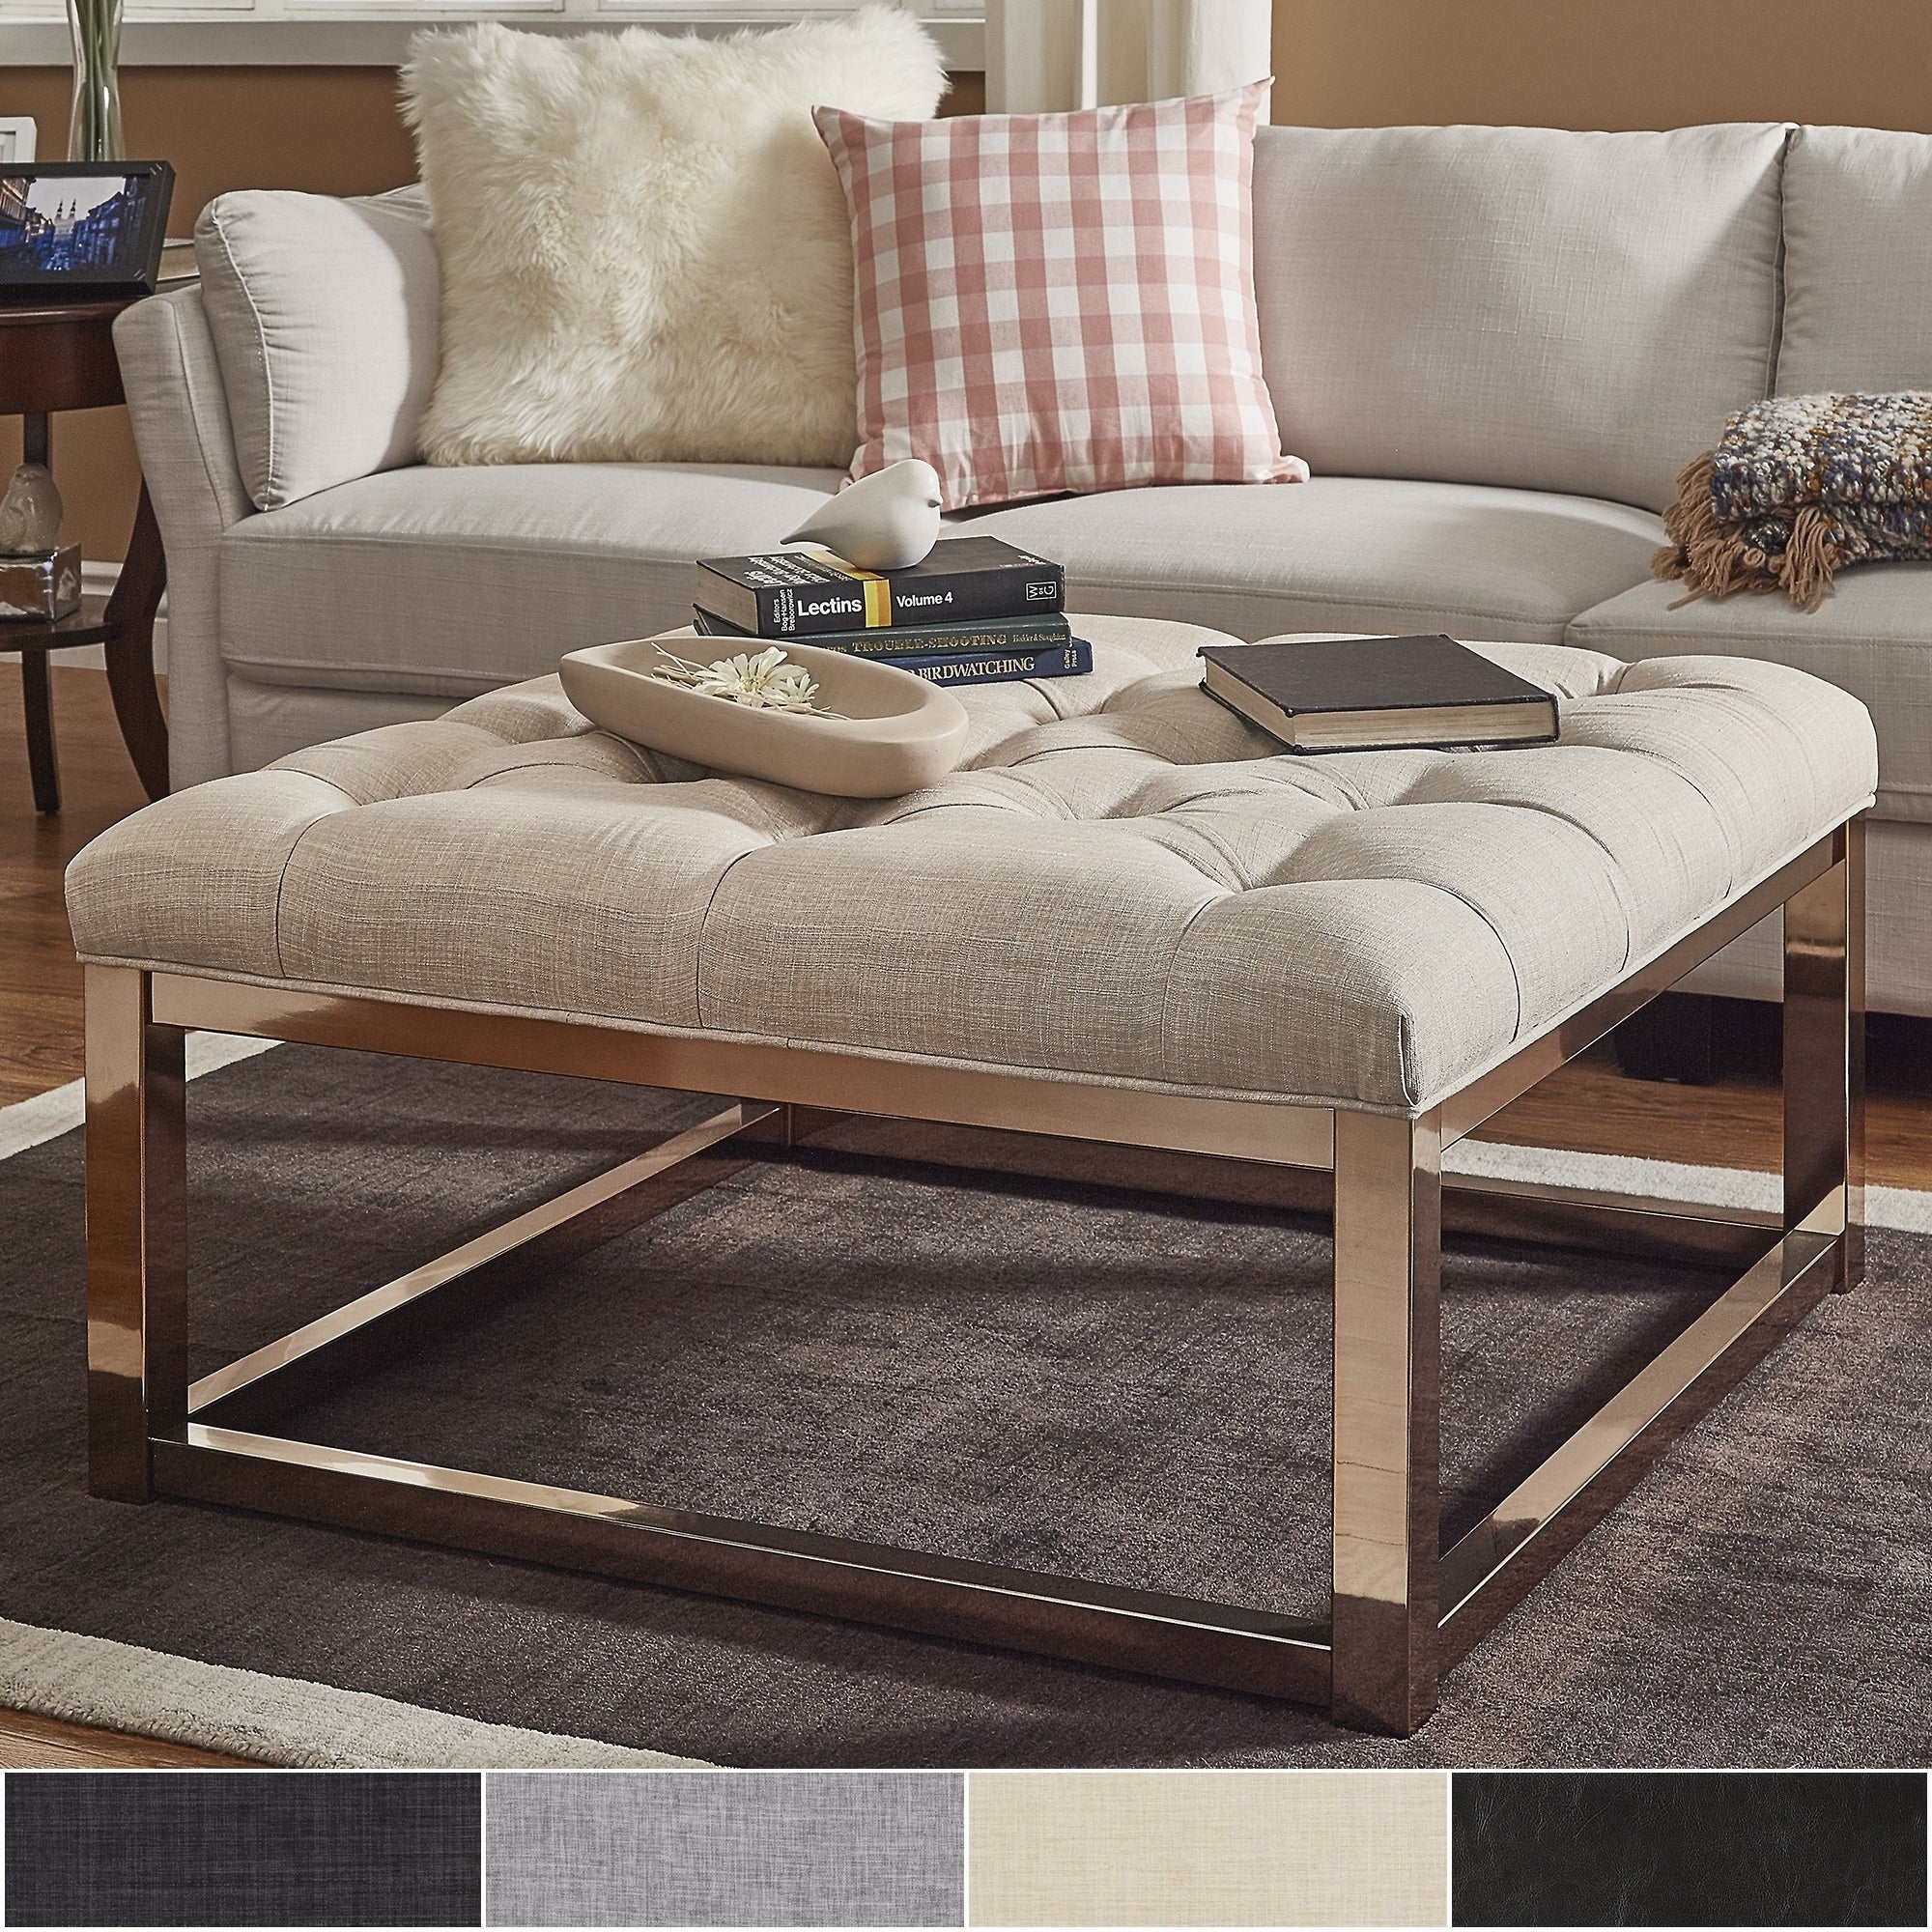 - Shop Solene Square Base Ottoman Coffee Table - Champagne Gold By